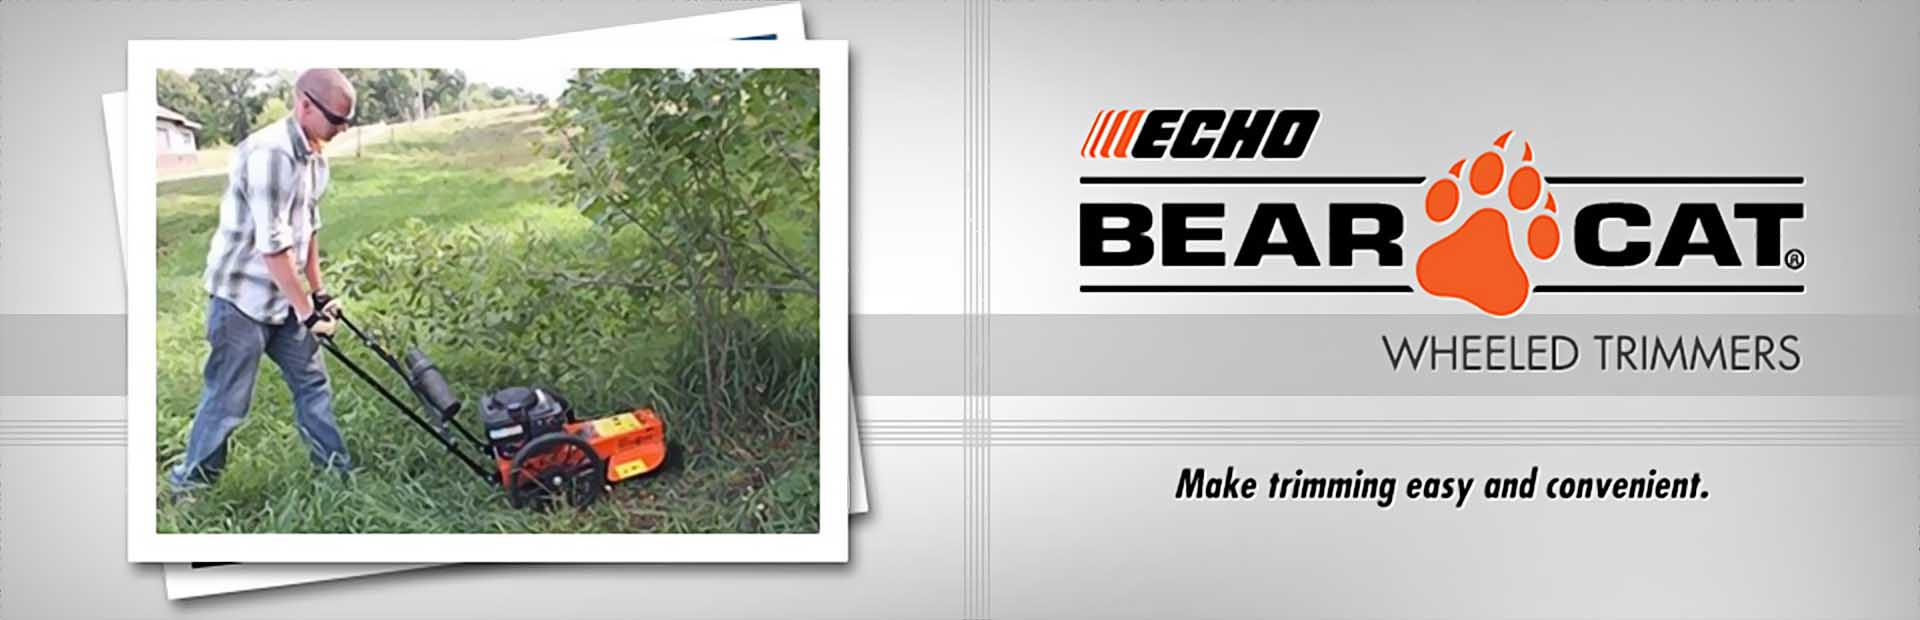 ECHO Bear Cat Wheeled Trimmers: Click here to view the models.